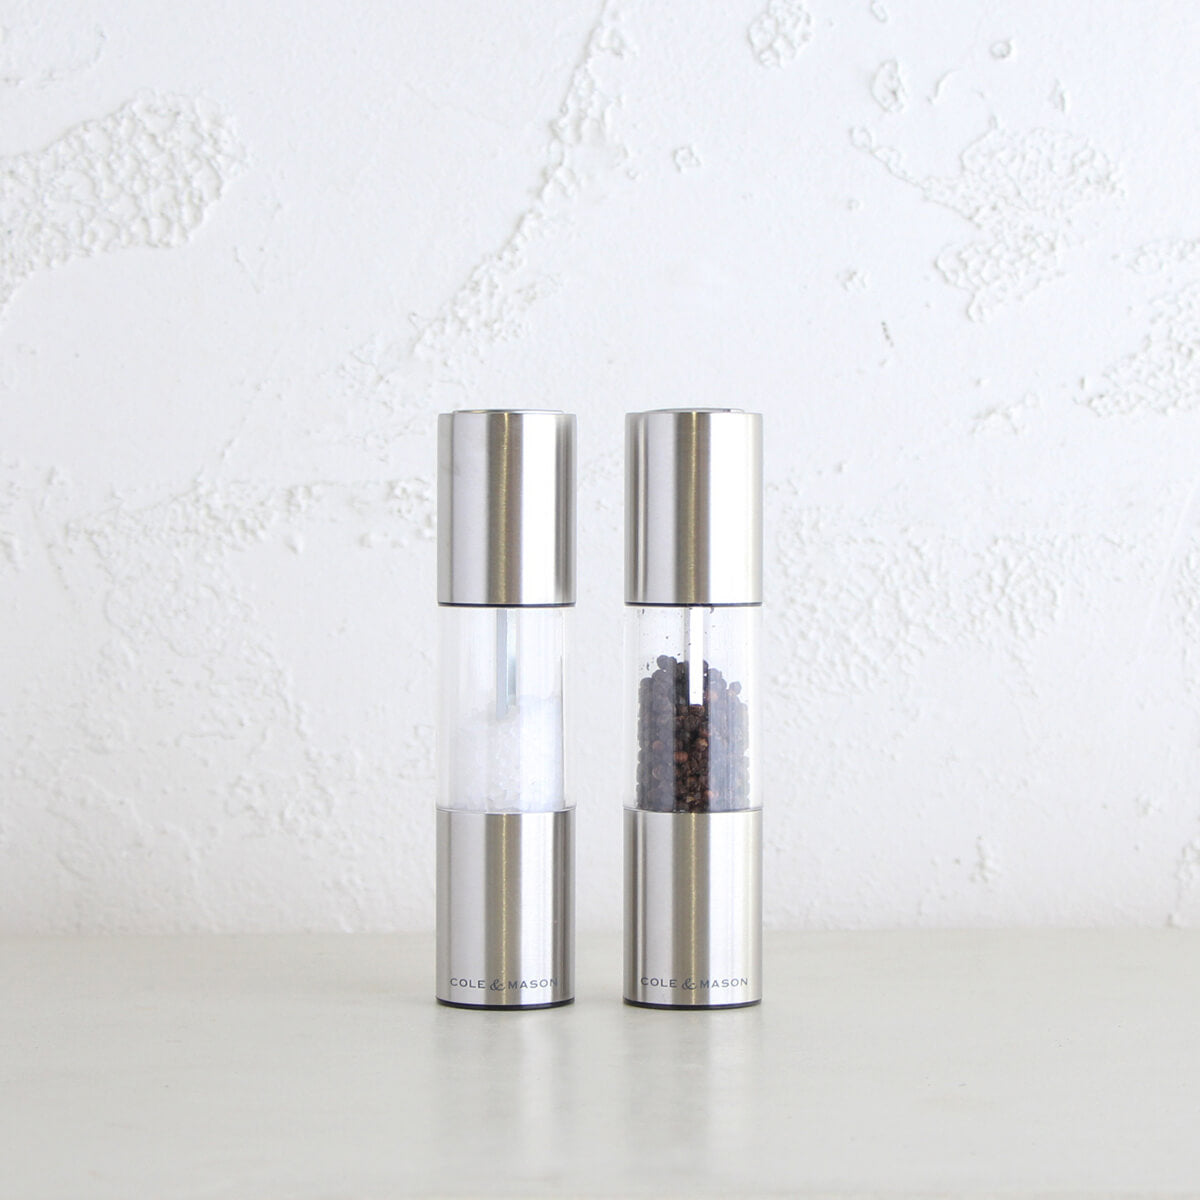 COLE & MASON  |  OSLO SALT + PEPPER GRINDER SET  |  STAINLESS STEEL